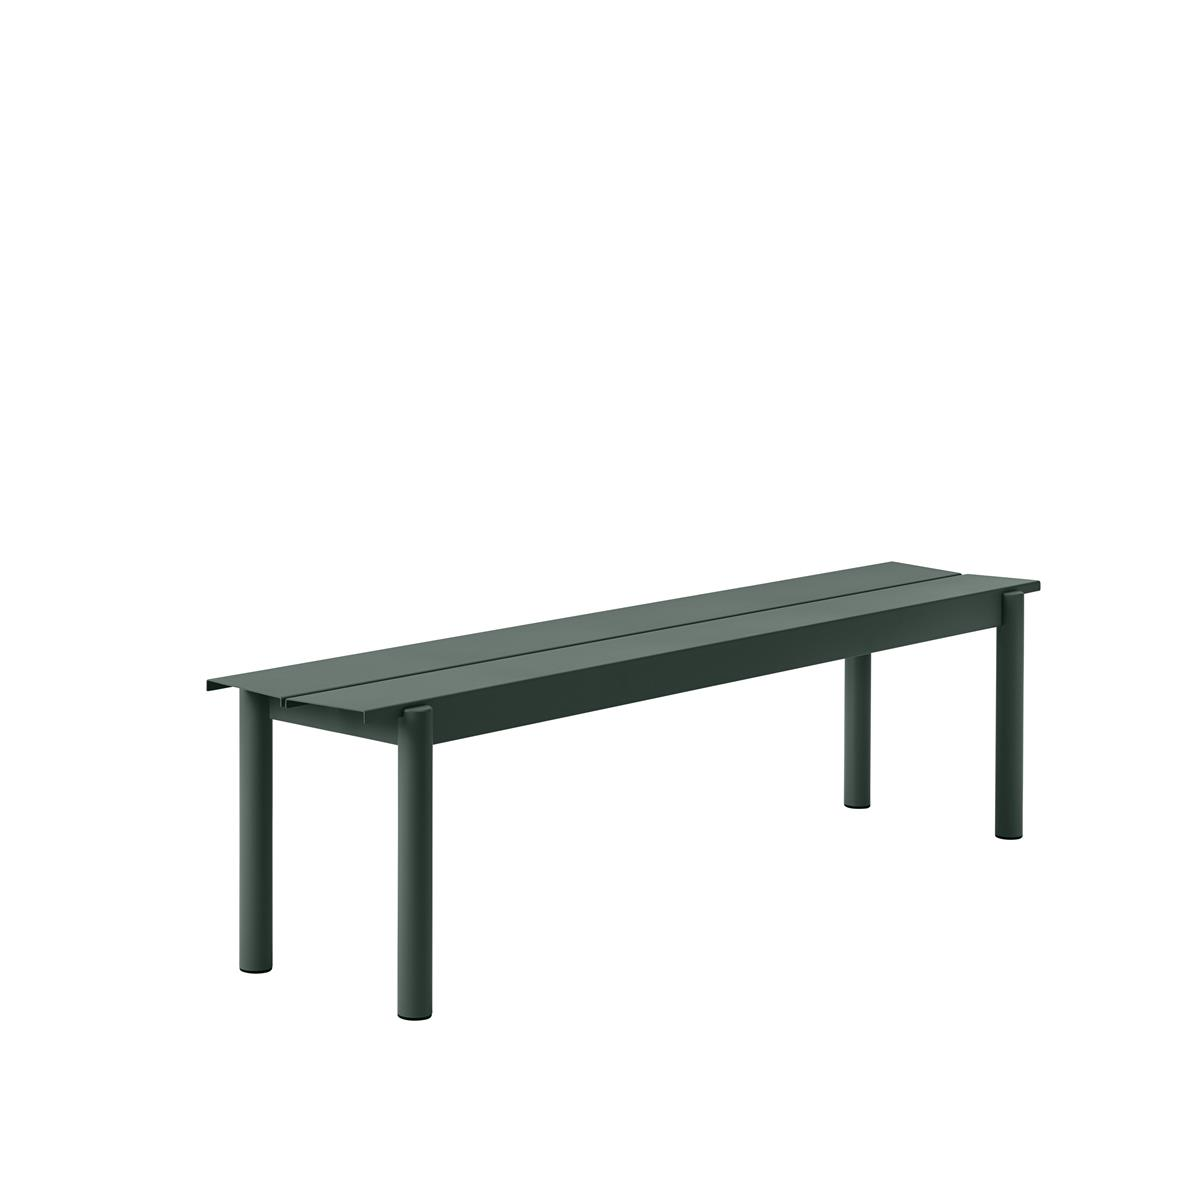 Linear Steel Bench 170 x H45,5 - Dark Green